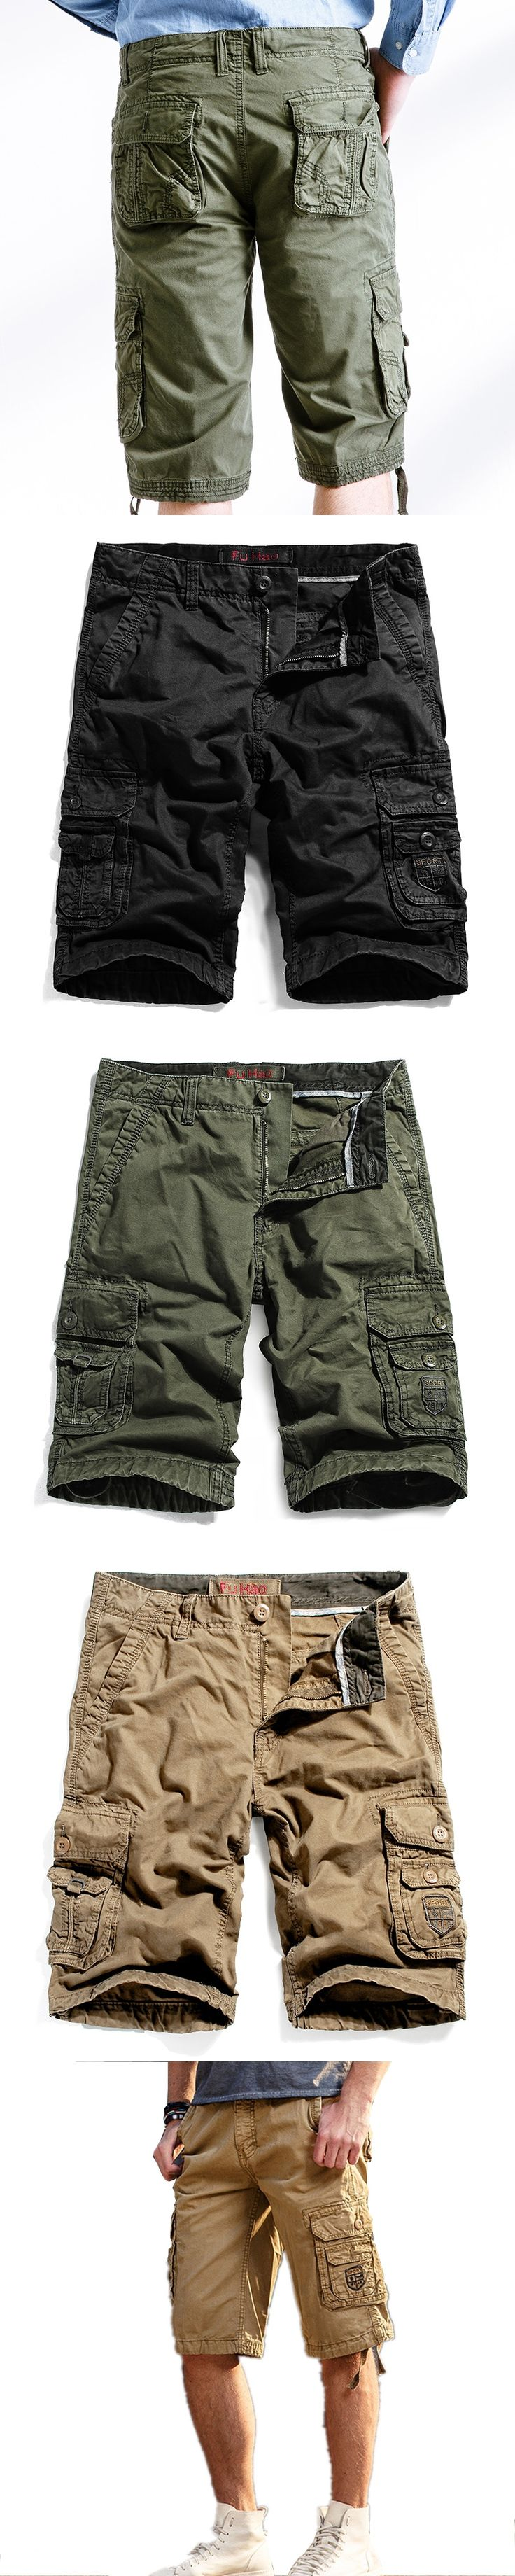 2017 Summer Mens Shorts Casual Loose mens Military Cargo Shorts Without Belt Homme Cotton Army Bermuda Masculina Short Pants 40